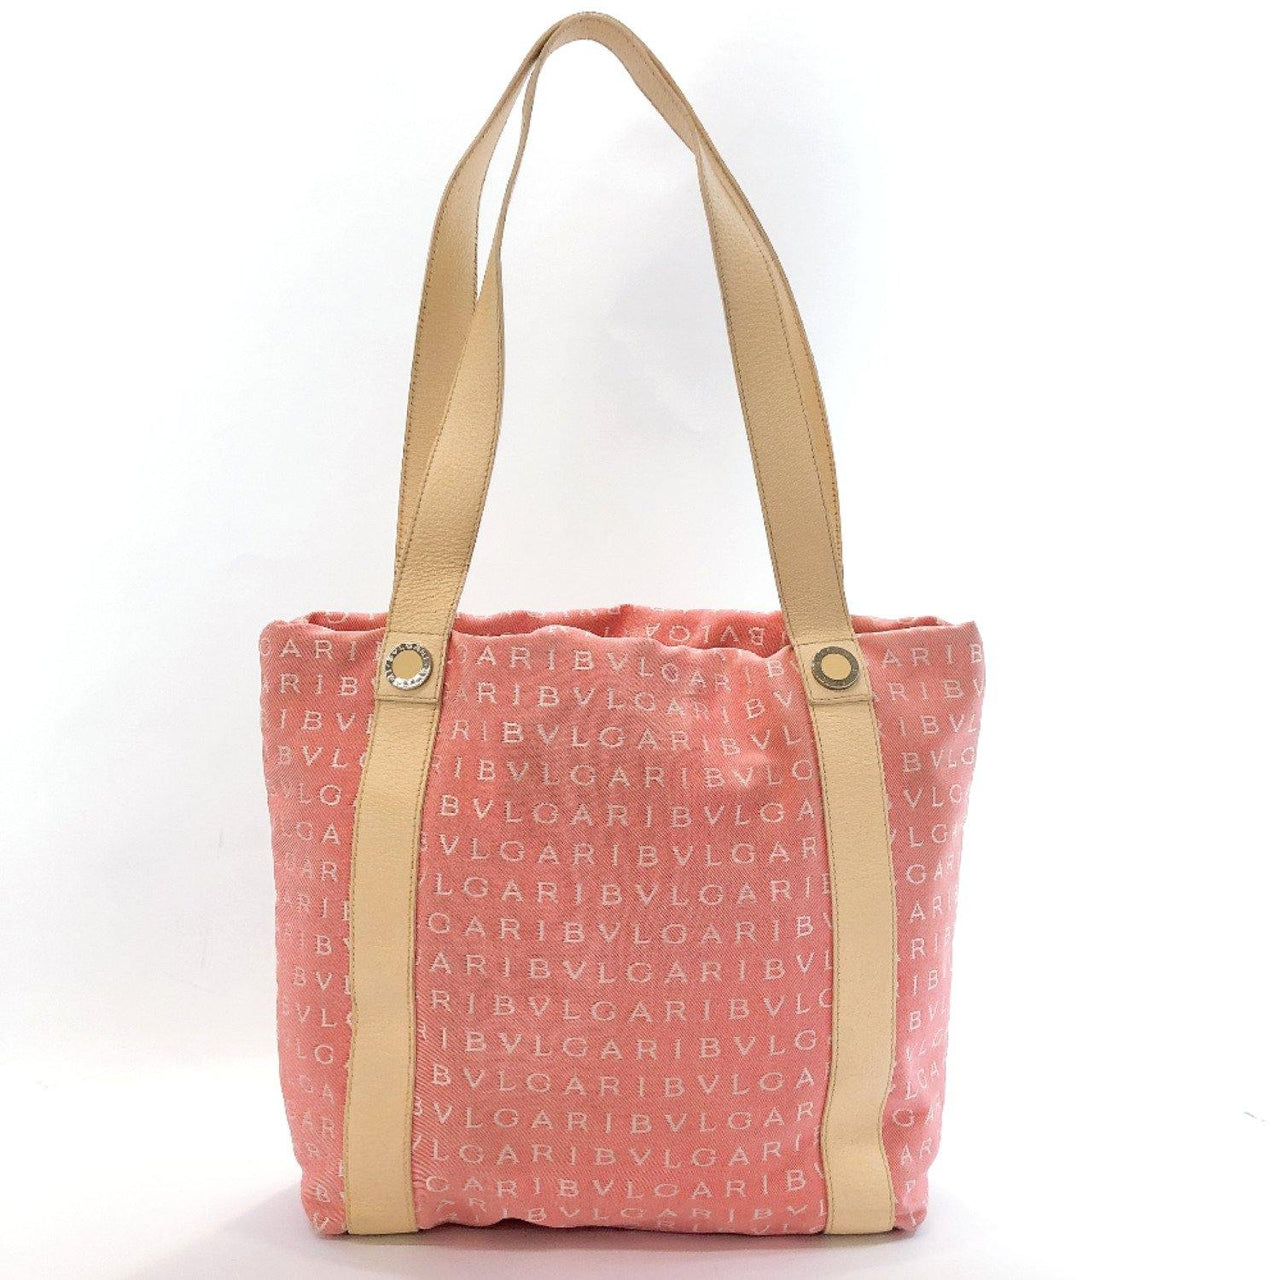 BVLGARI Tote Bag canvas/leather pink Women Used - JP-BRANDS.com